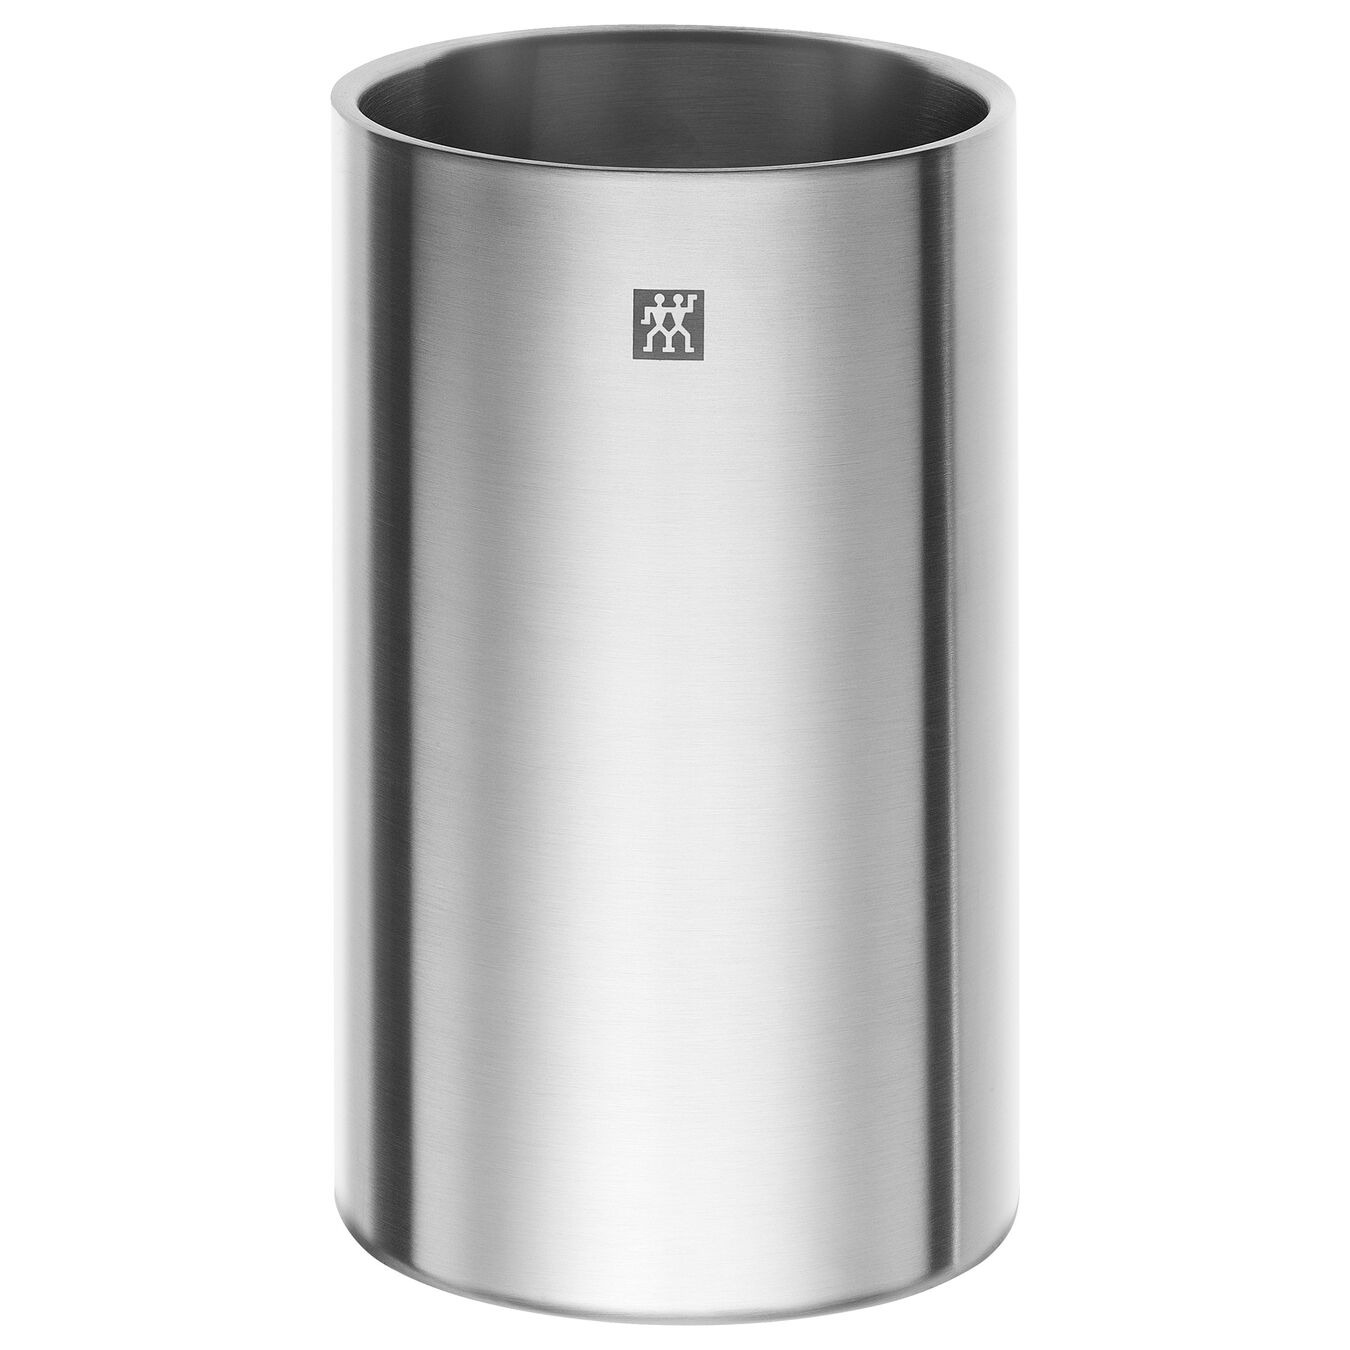 Stainless steel Wine cooler,,large 1